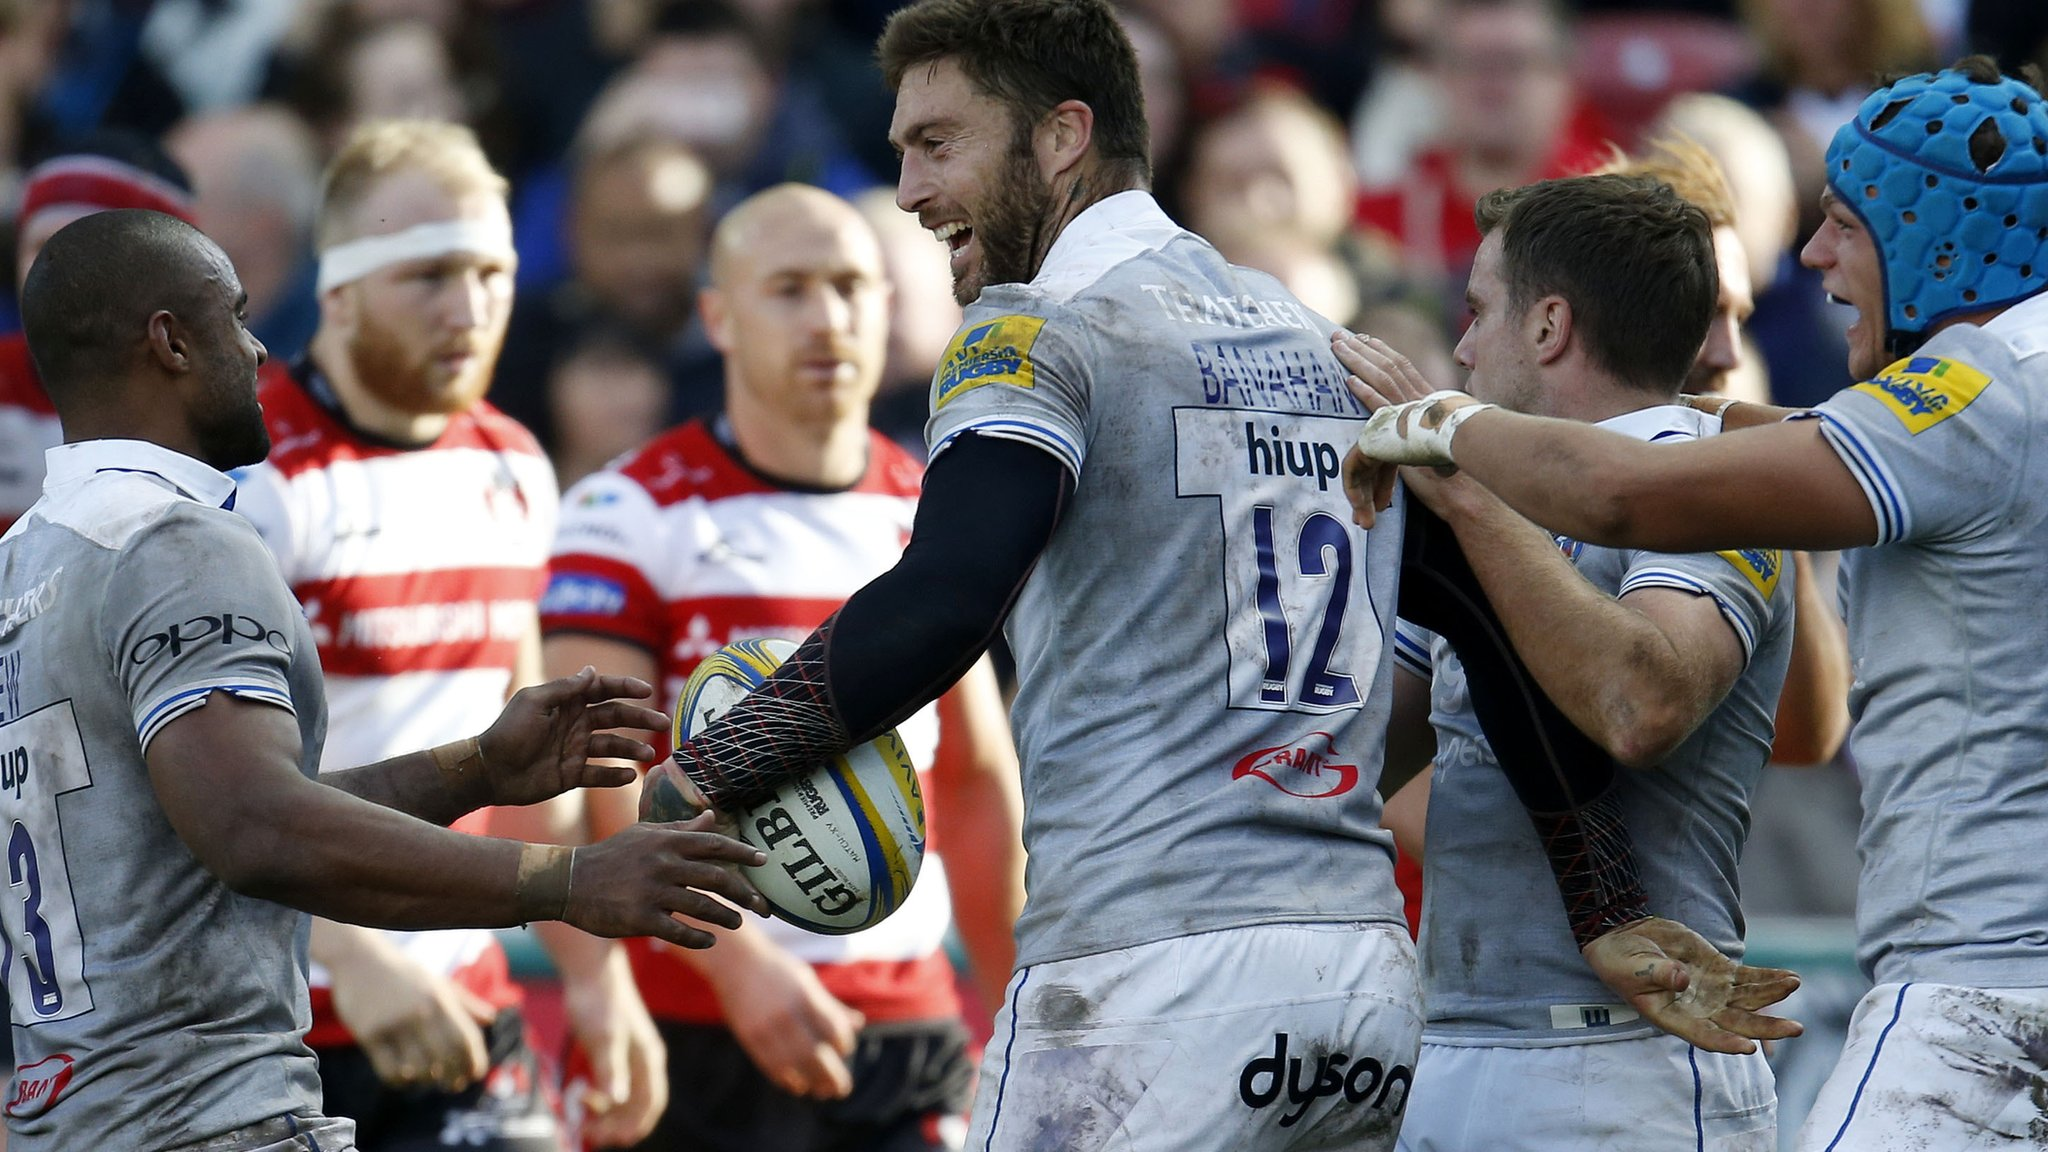 Late tries give Bath victory over Gloucester in derby